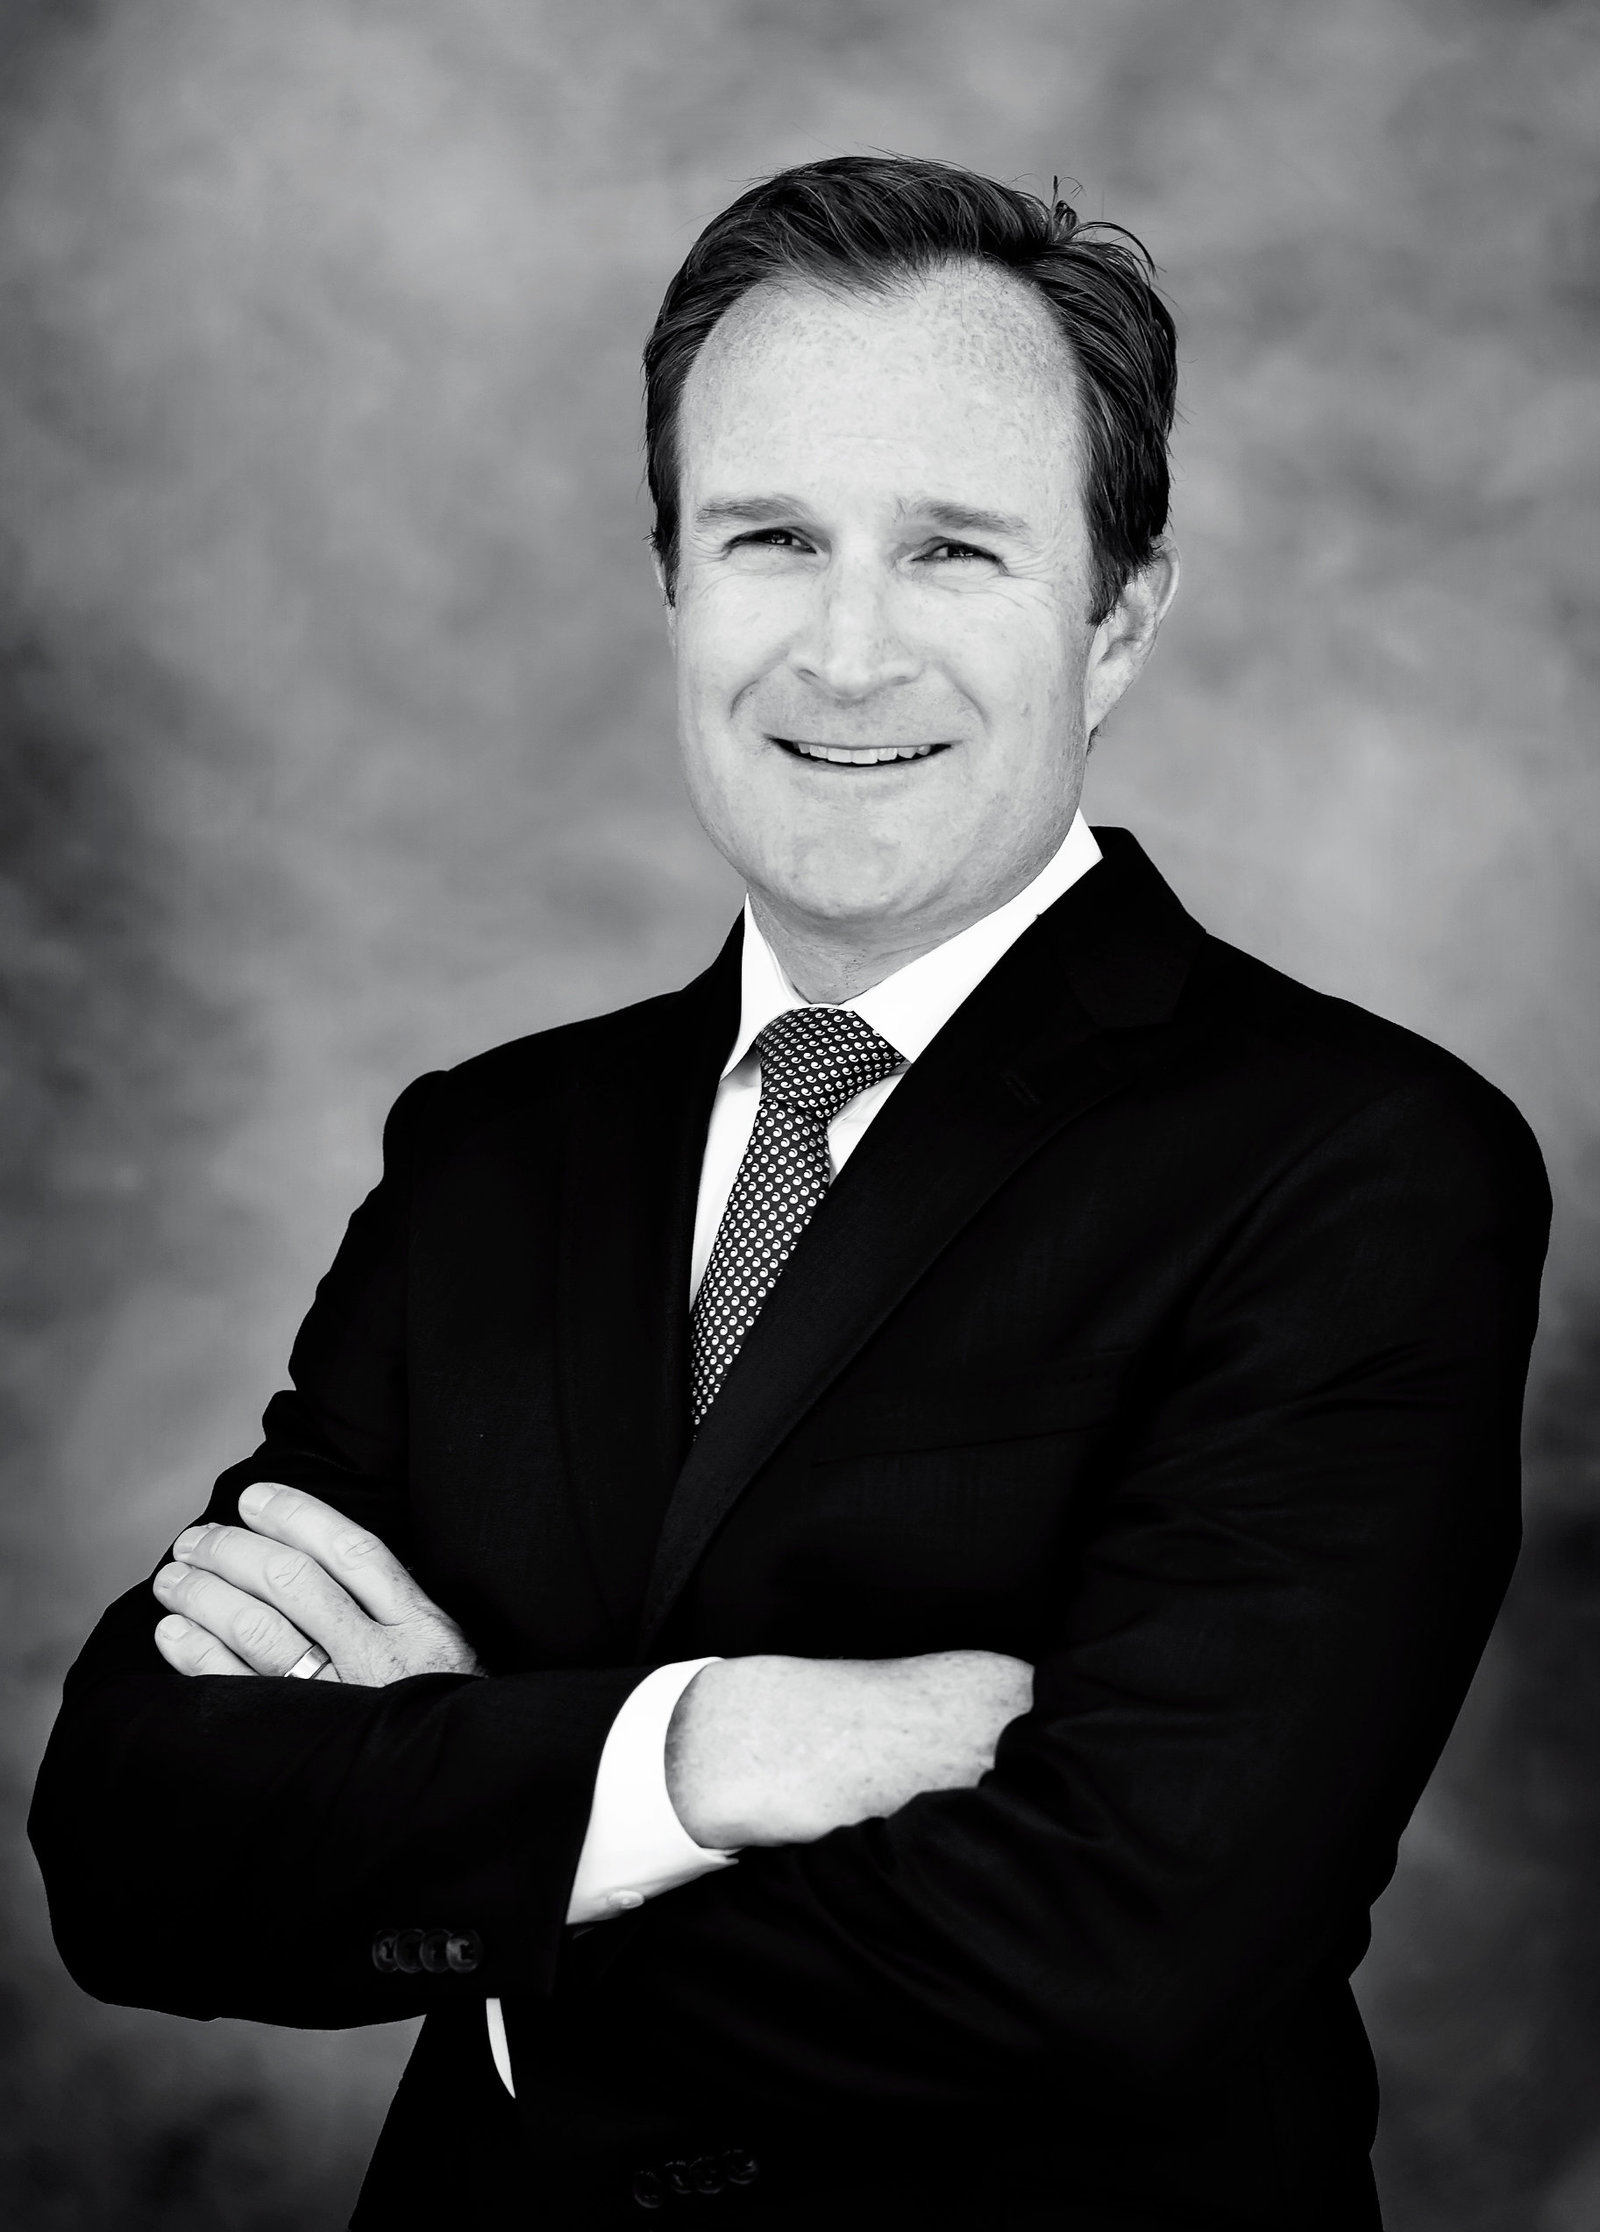 Corporate Head Shot (6 of 6)bw